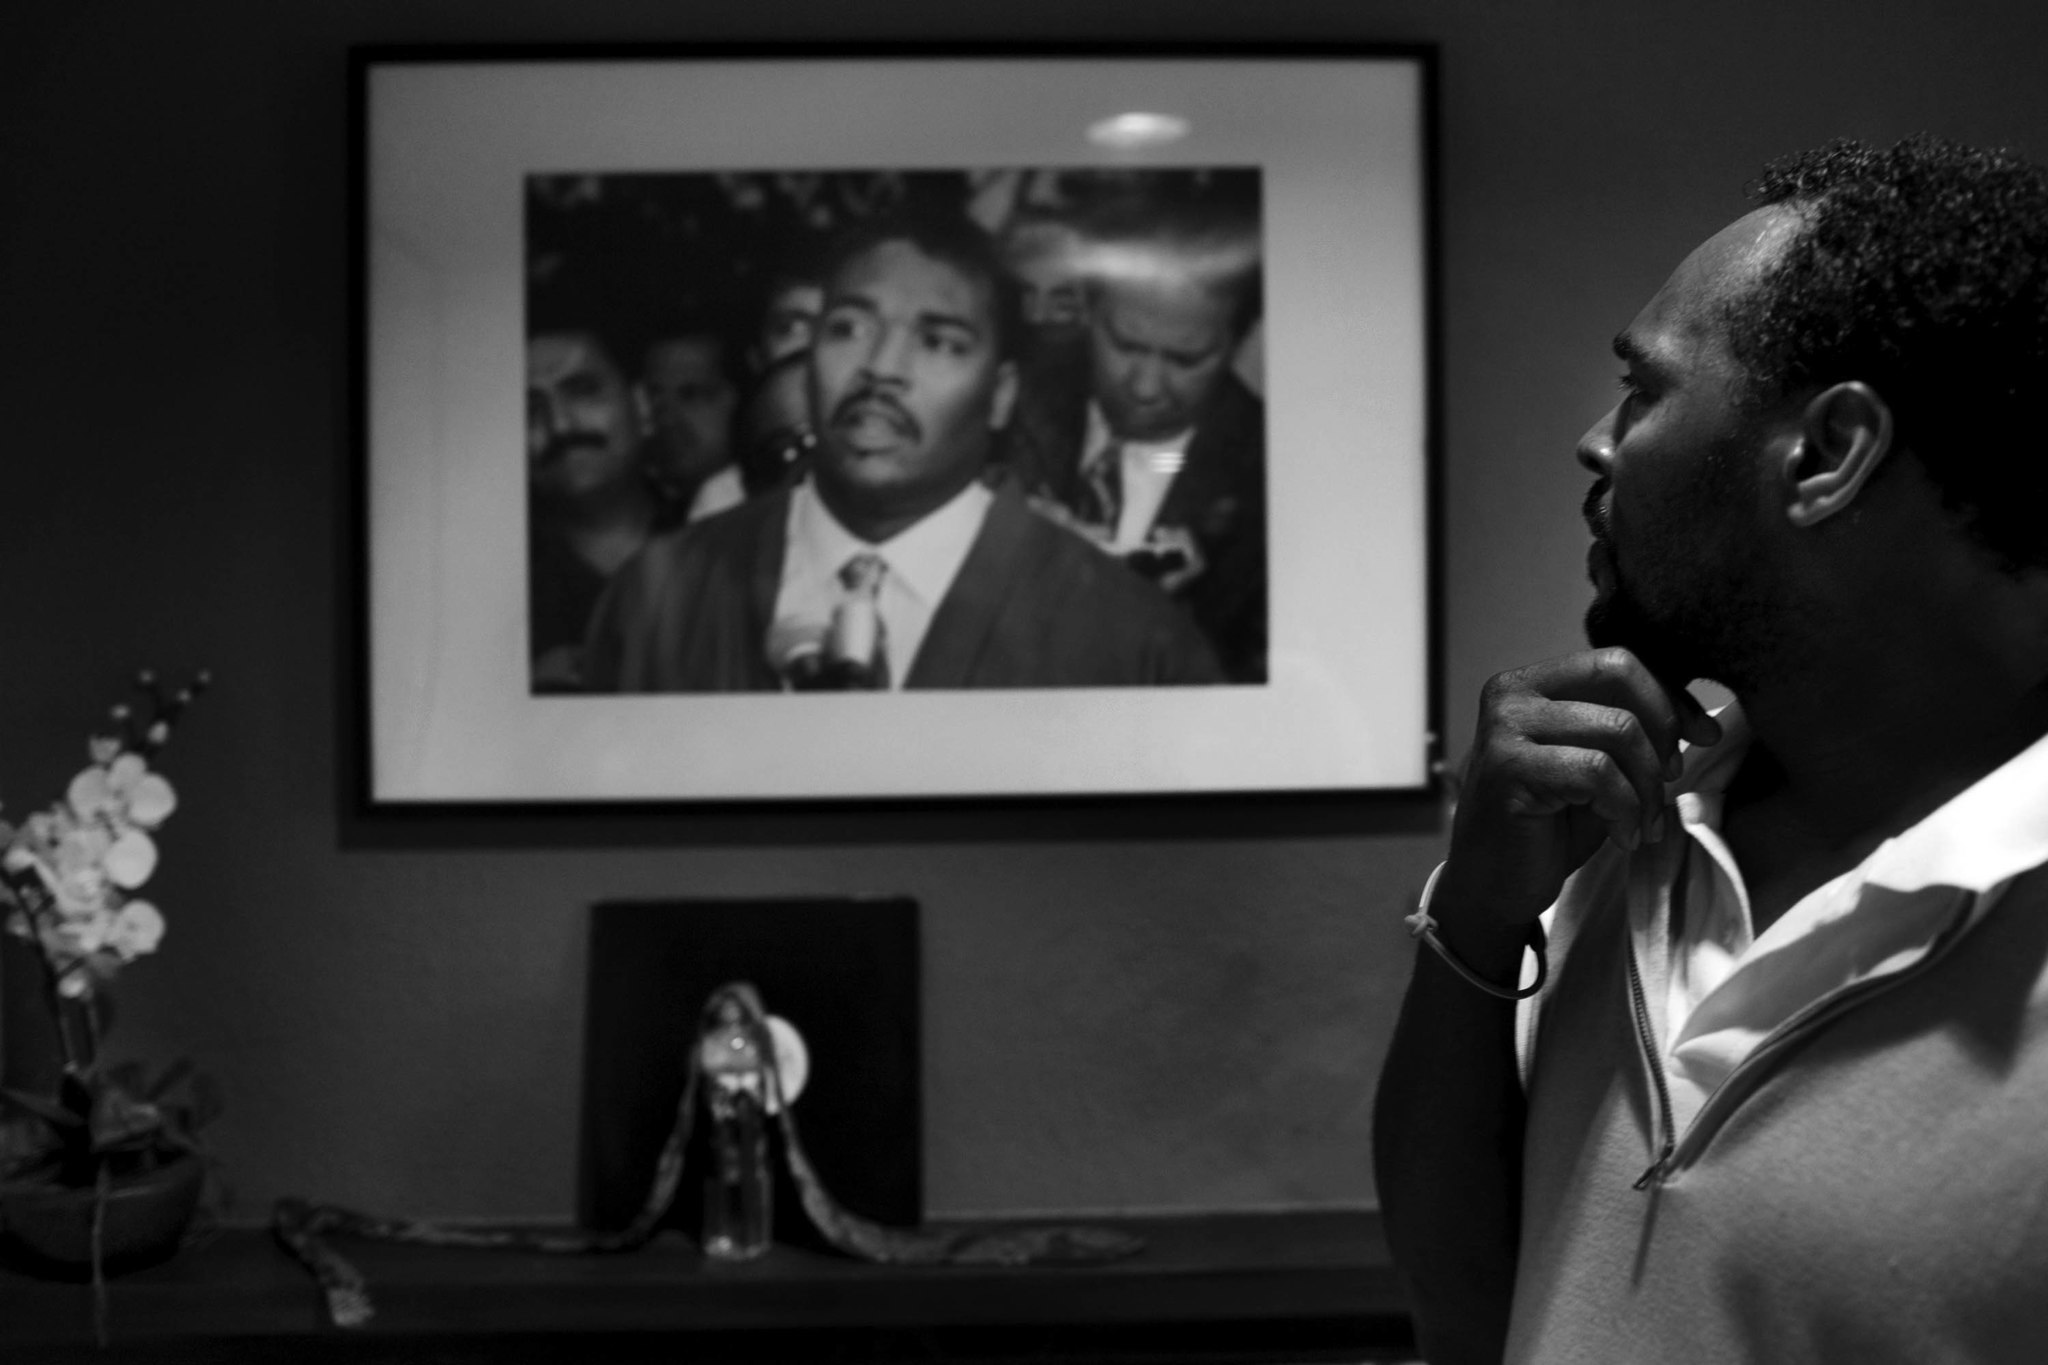 March 26, 2012: Rodney Glen King looks at a picture of himself from May 1, 1992, the third day of th